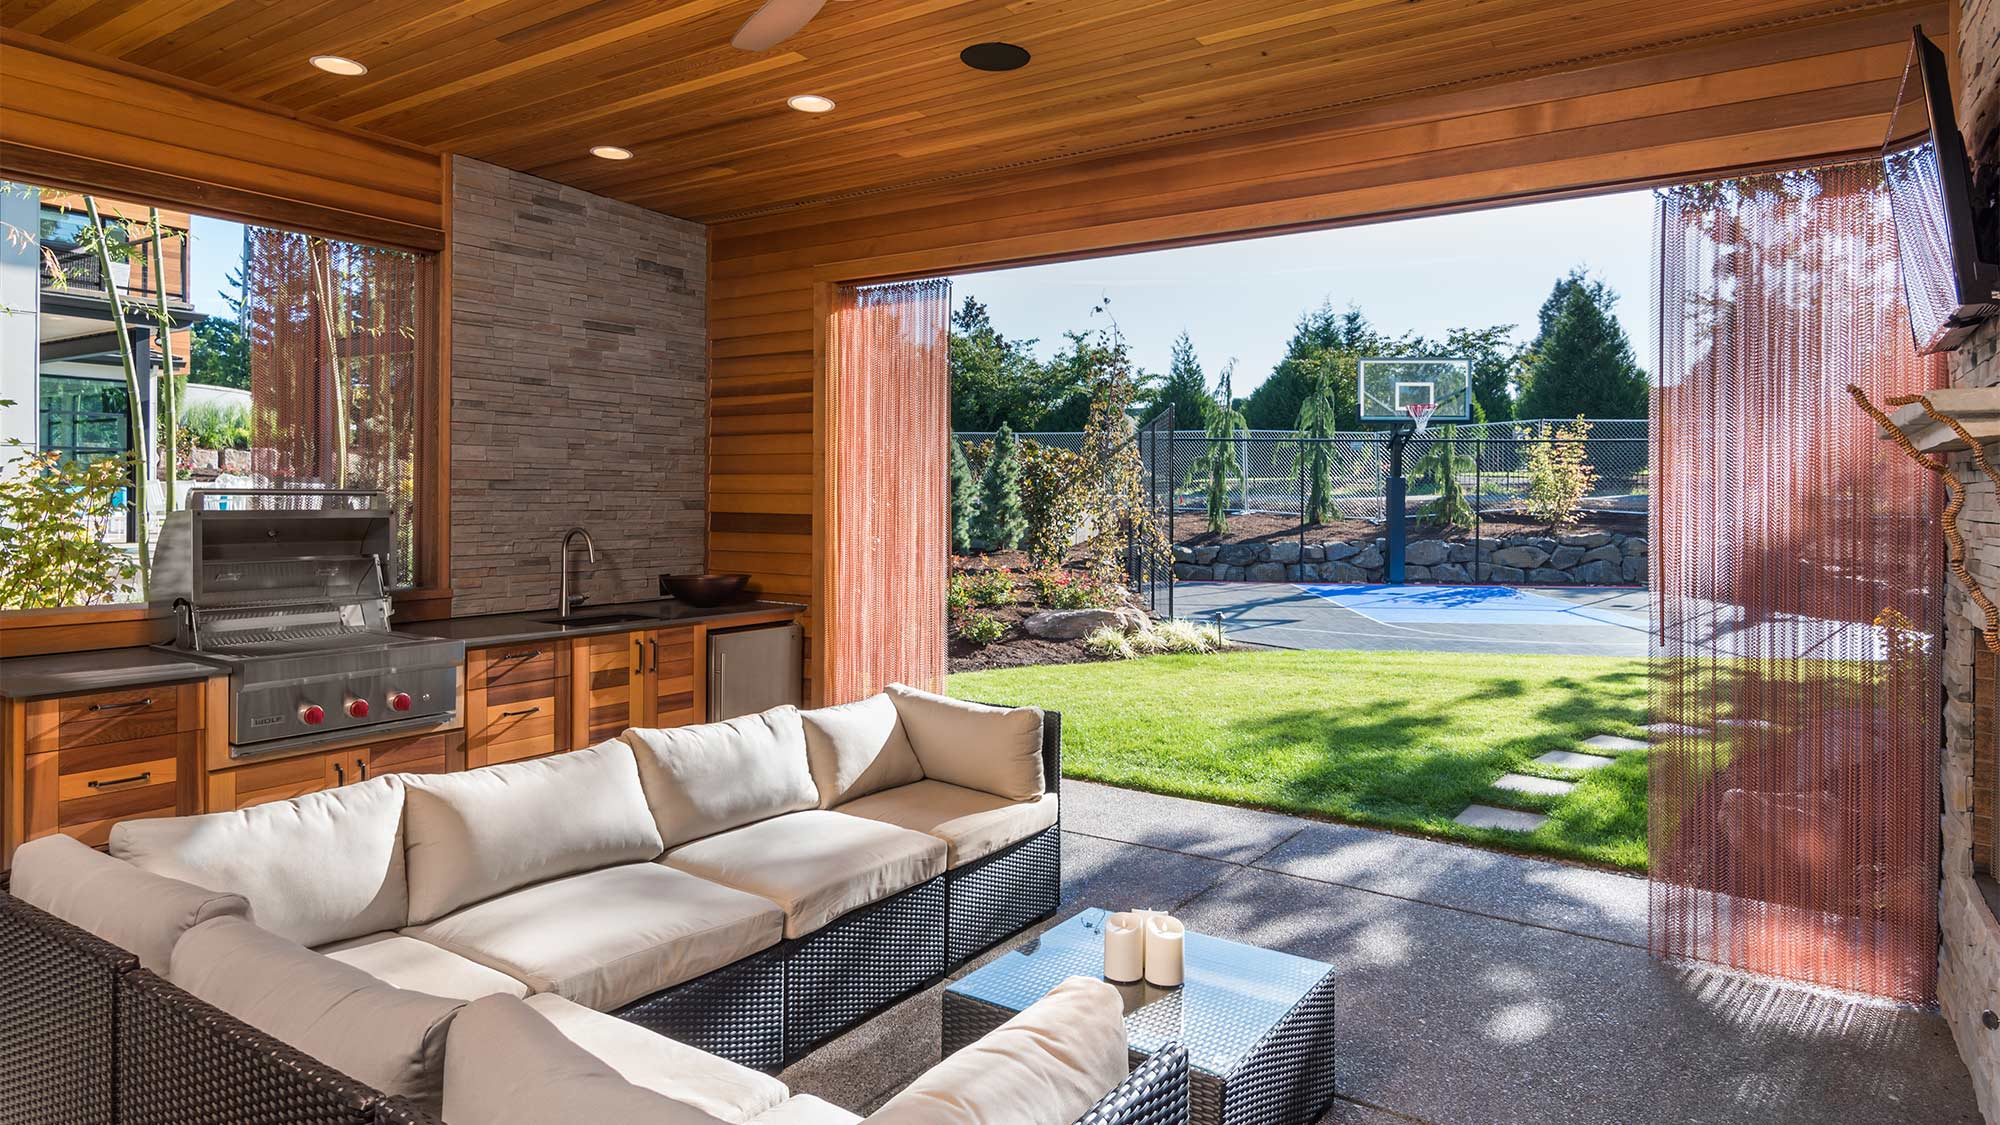 Backyard Landscaping Ideas That Will Turn Your Yard Into An Oasis with Home Backyard Landscaping Ideas